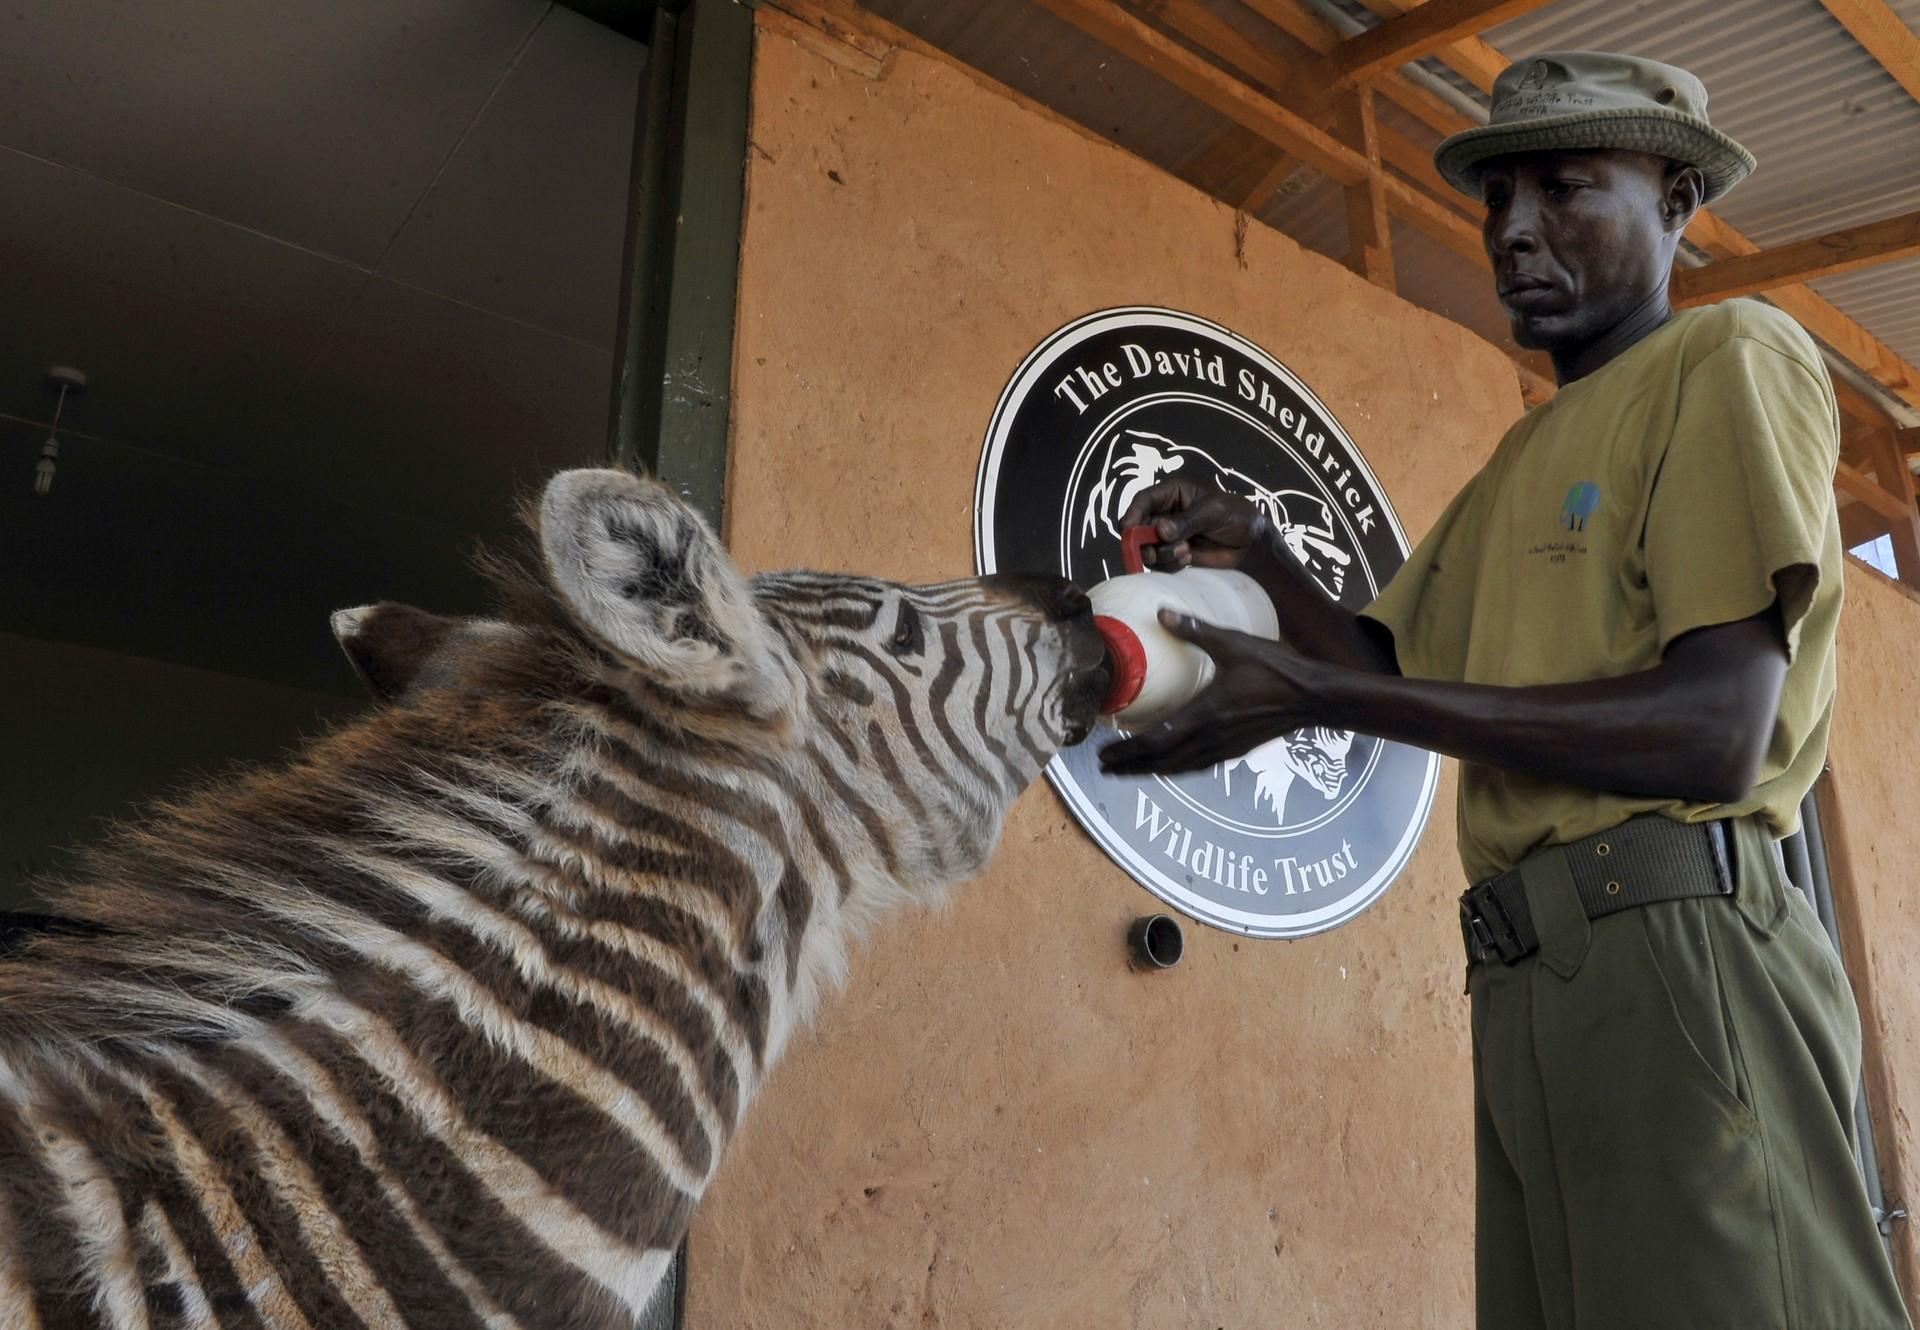 Helping elephants and zebras